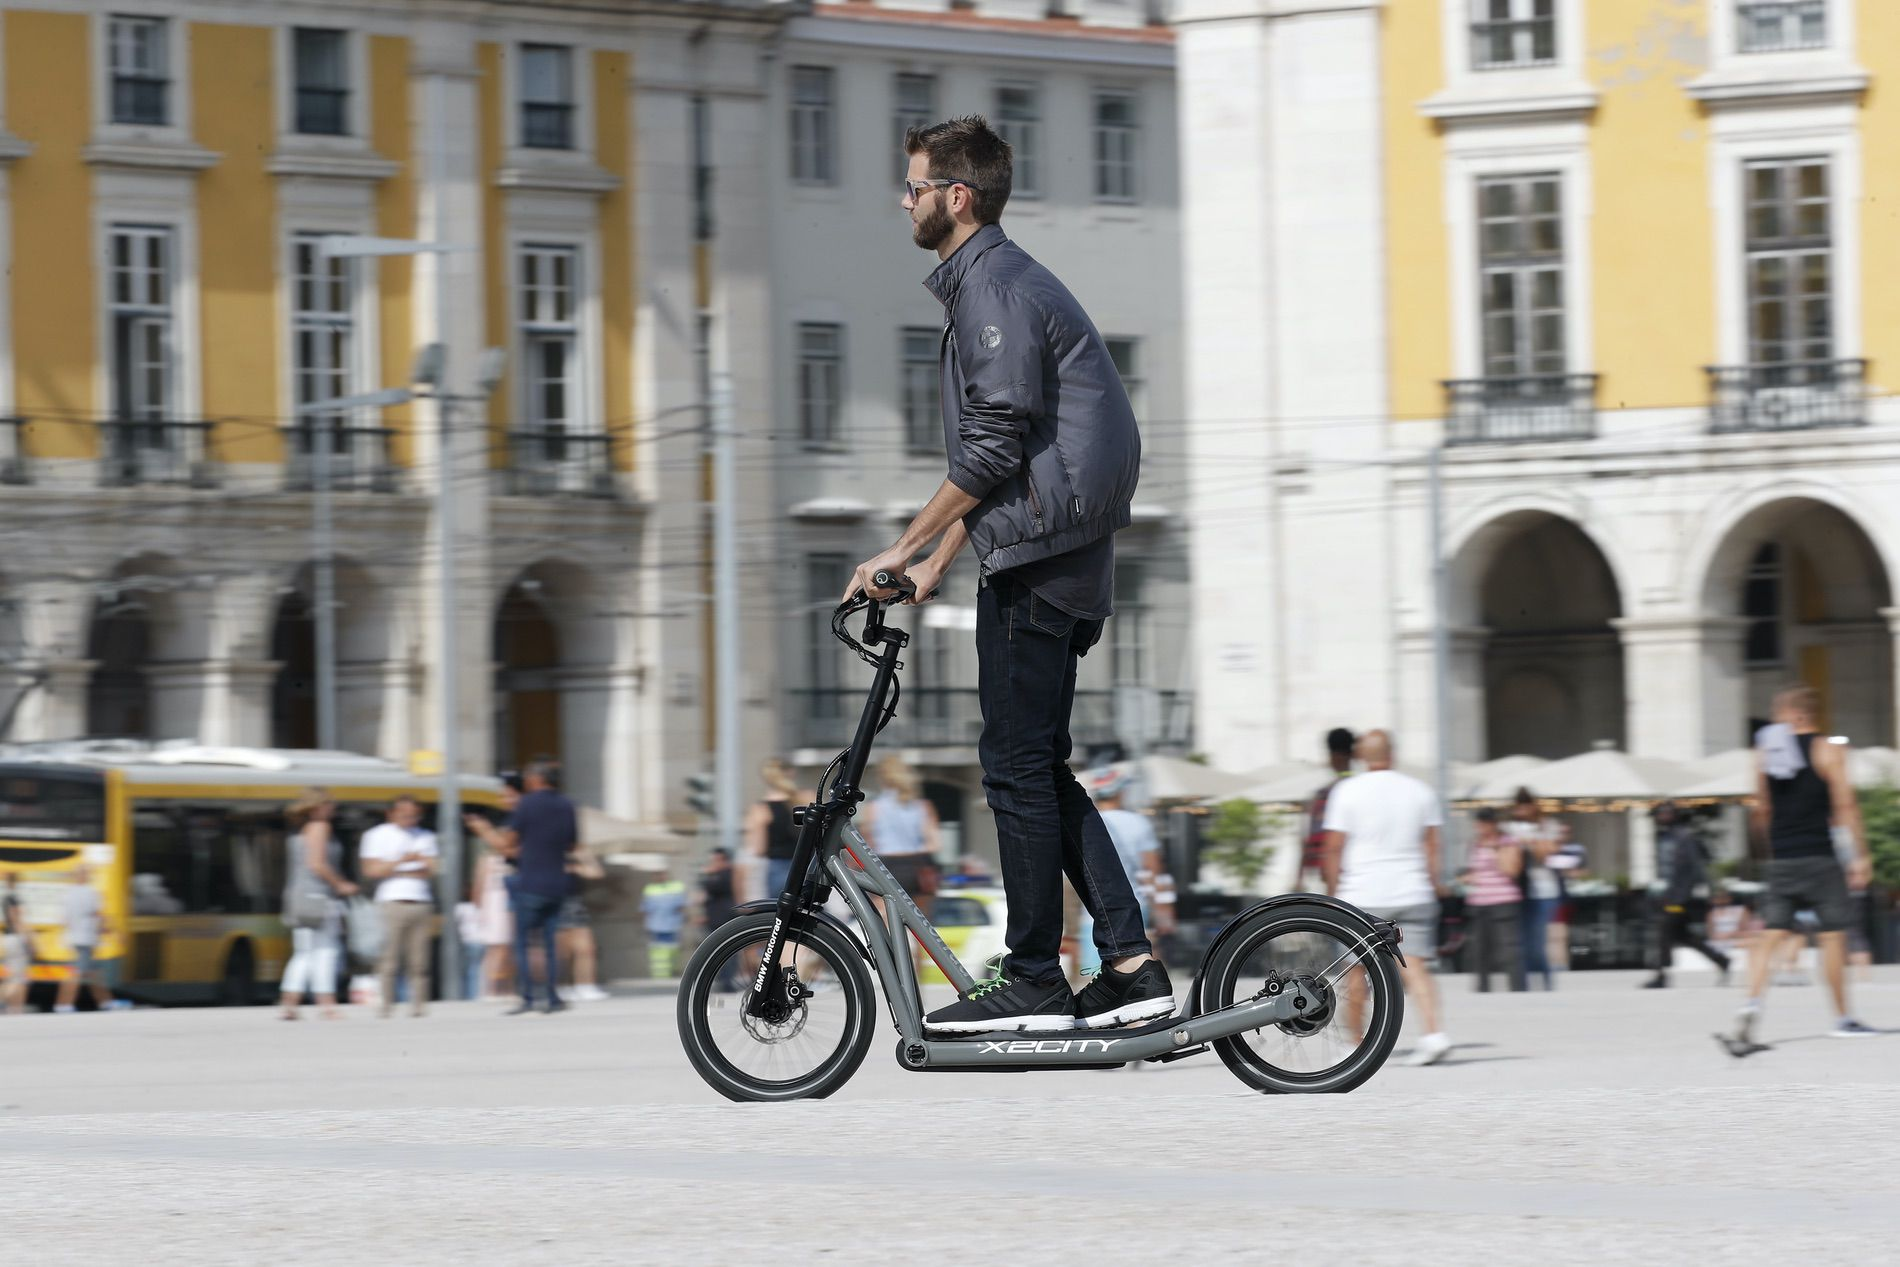 BMW Motorrad introduces a new electric scooter - X2City